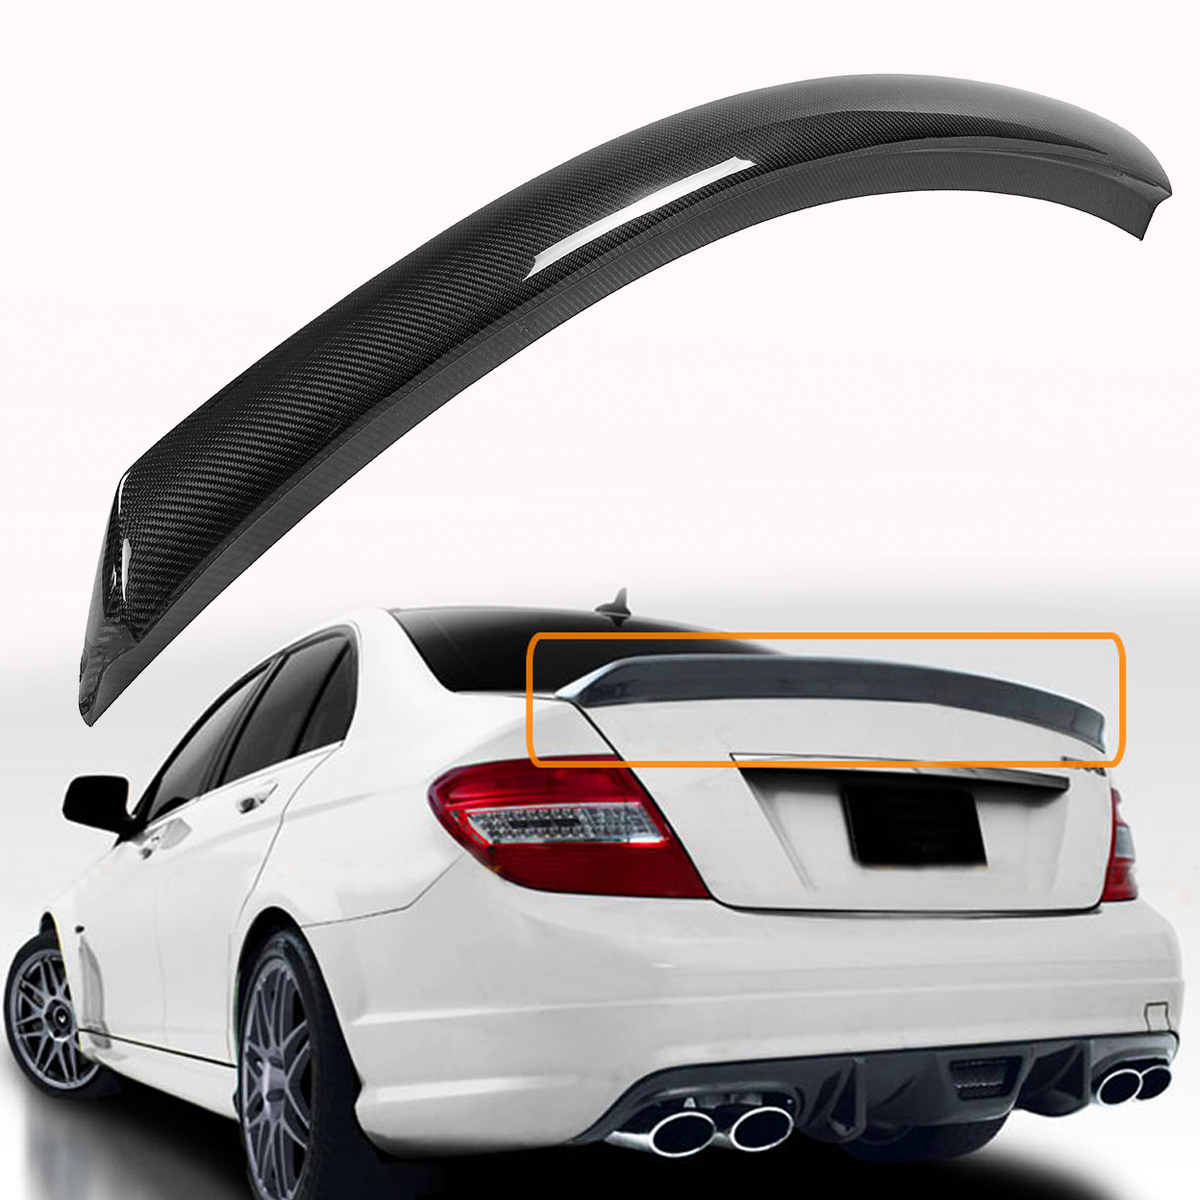 W204 C250 C300 C63 Real Carbon Fiber Car Rear Trunk Spoiler Wing For Mercedes For Benz 2008 2014 4 Door V Style Wing Spolier